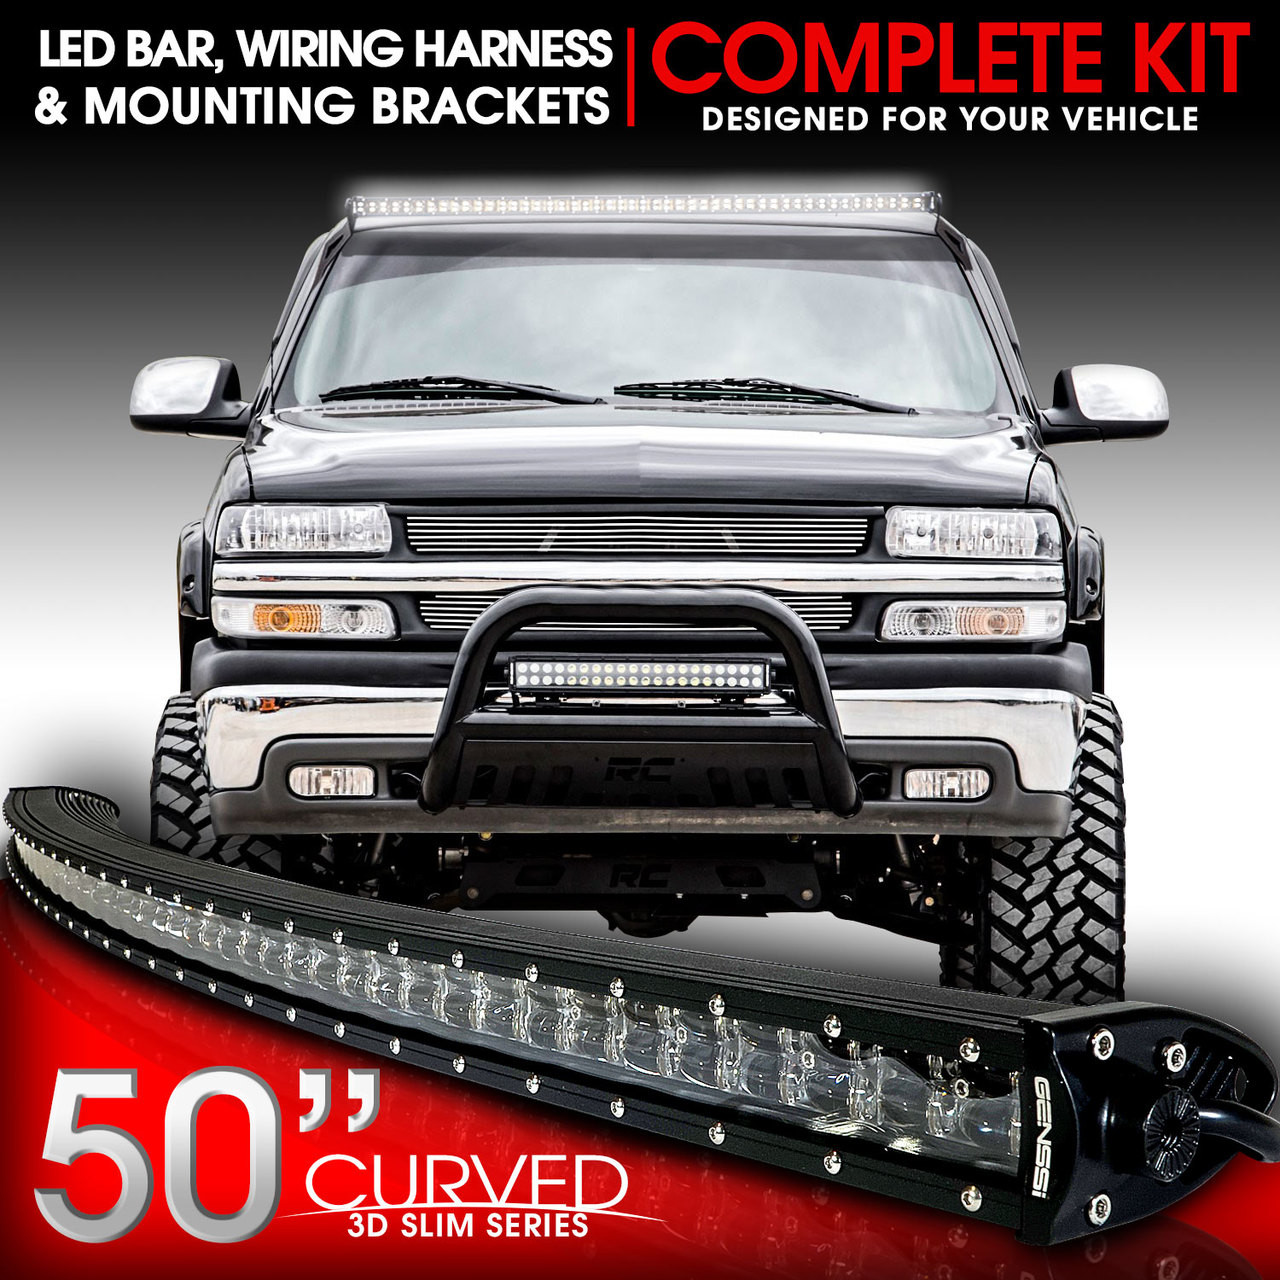 led light bar curved 288w 50 inches bracket wiring harness kit for rh genssi com 2006 chevy silverado tail light wiring harness 2006 chevy silverado tail light wiring harness